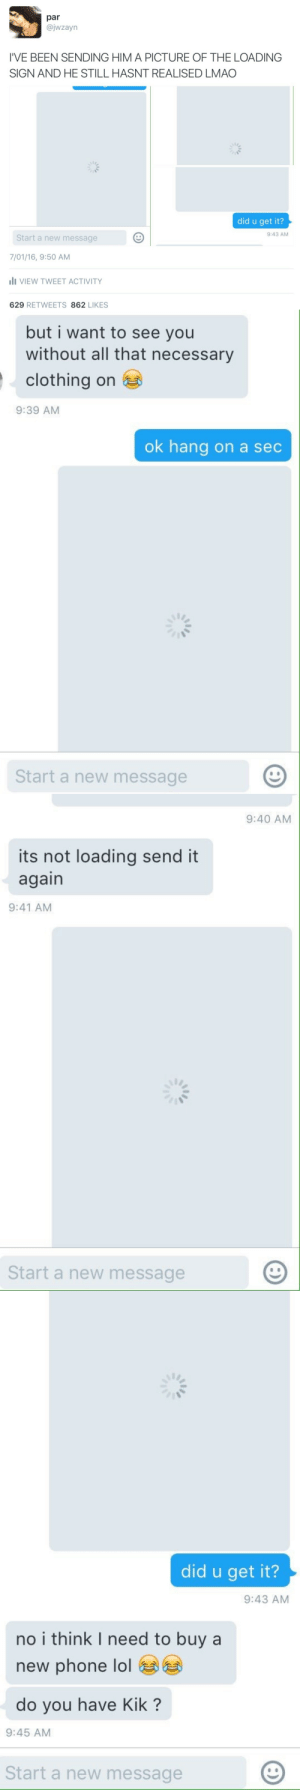 clahrify:  this is a game changer : par  @jwzayn  I'VE BEEN SENDING HIM A PICTURE OF THE LOADING  SIGN AND HE STILL HASNT REALISED LMAO  did u get it?  9:43 AM  Start a new message  7/01/16, 9:50 AM  ili VIEW TWEET ACTIVITY  629 RETWEETS 862 LIKES   but i want to see you  without all that necessary  clothing on  9:39 AM  ok hang on a sec  Start a new message   9:40 AM  its not loading send it  again  9:41 AM  Start a new message   did u get it?  9:43 AM  no i think I need to buy a  new phone lol  do you have Kik ?  9:45 AM  Start a new message clahrify:  this is a game changer